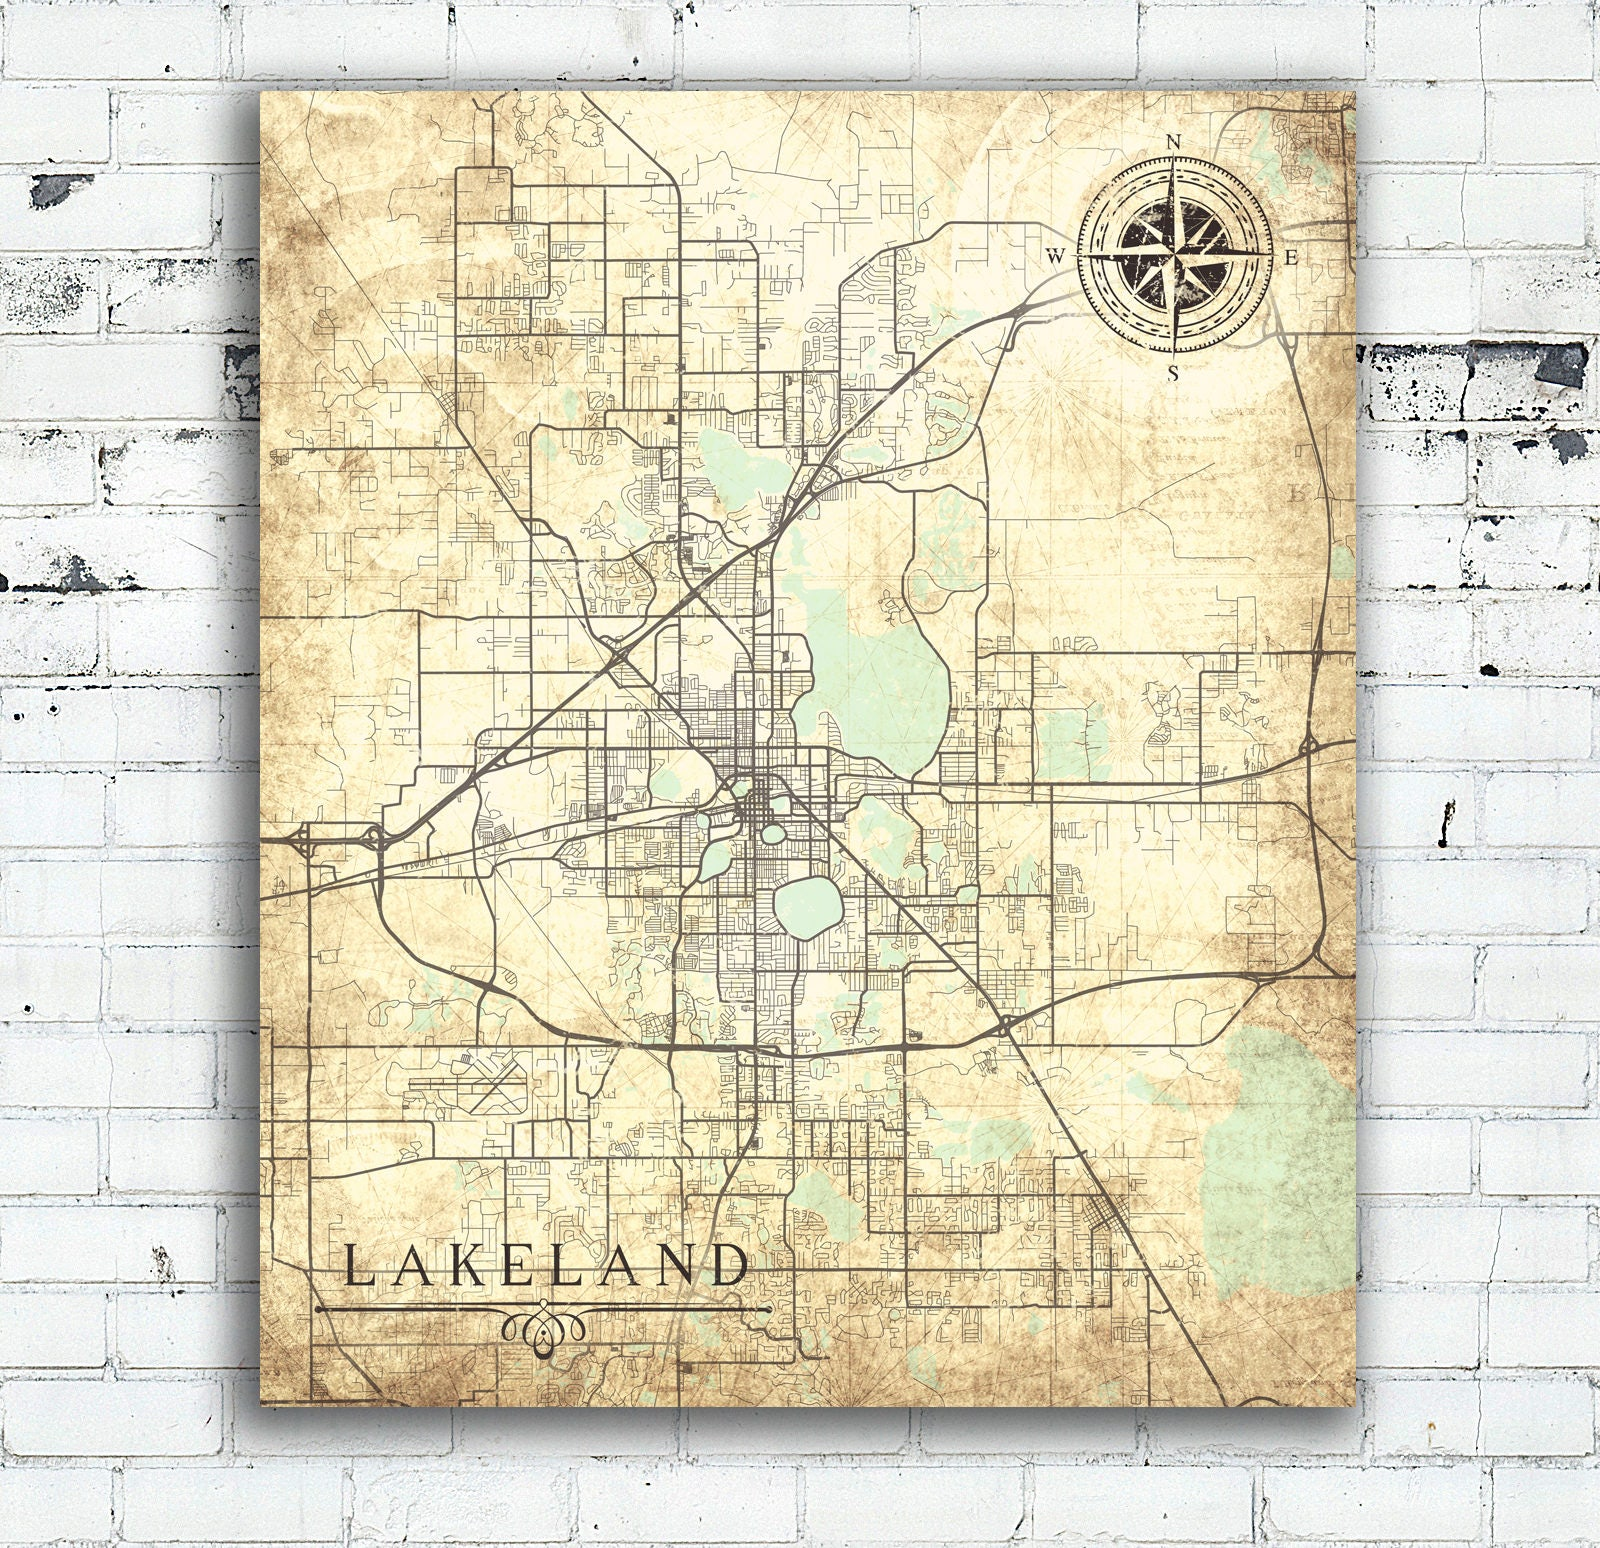 Lakeland Florida Map.Lakeland Fl Canvas Print Florida Fl Vintage Map Lakeland City Map